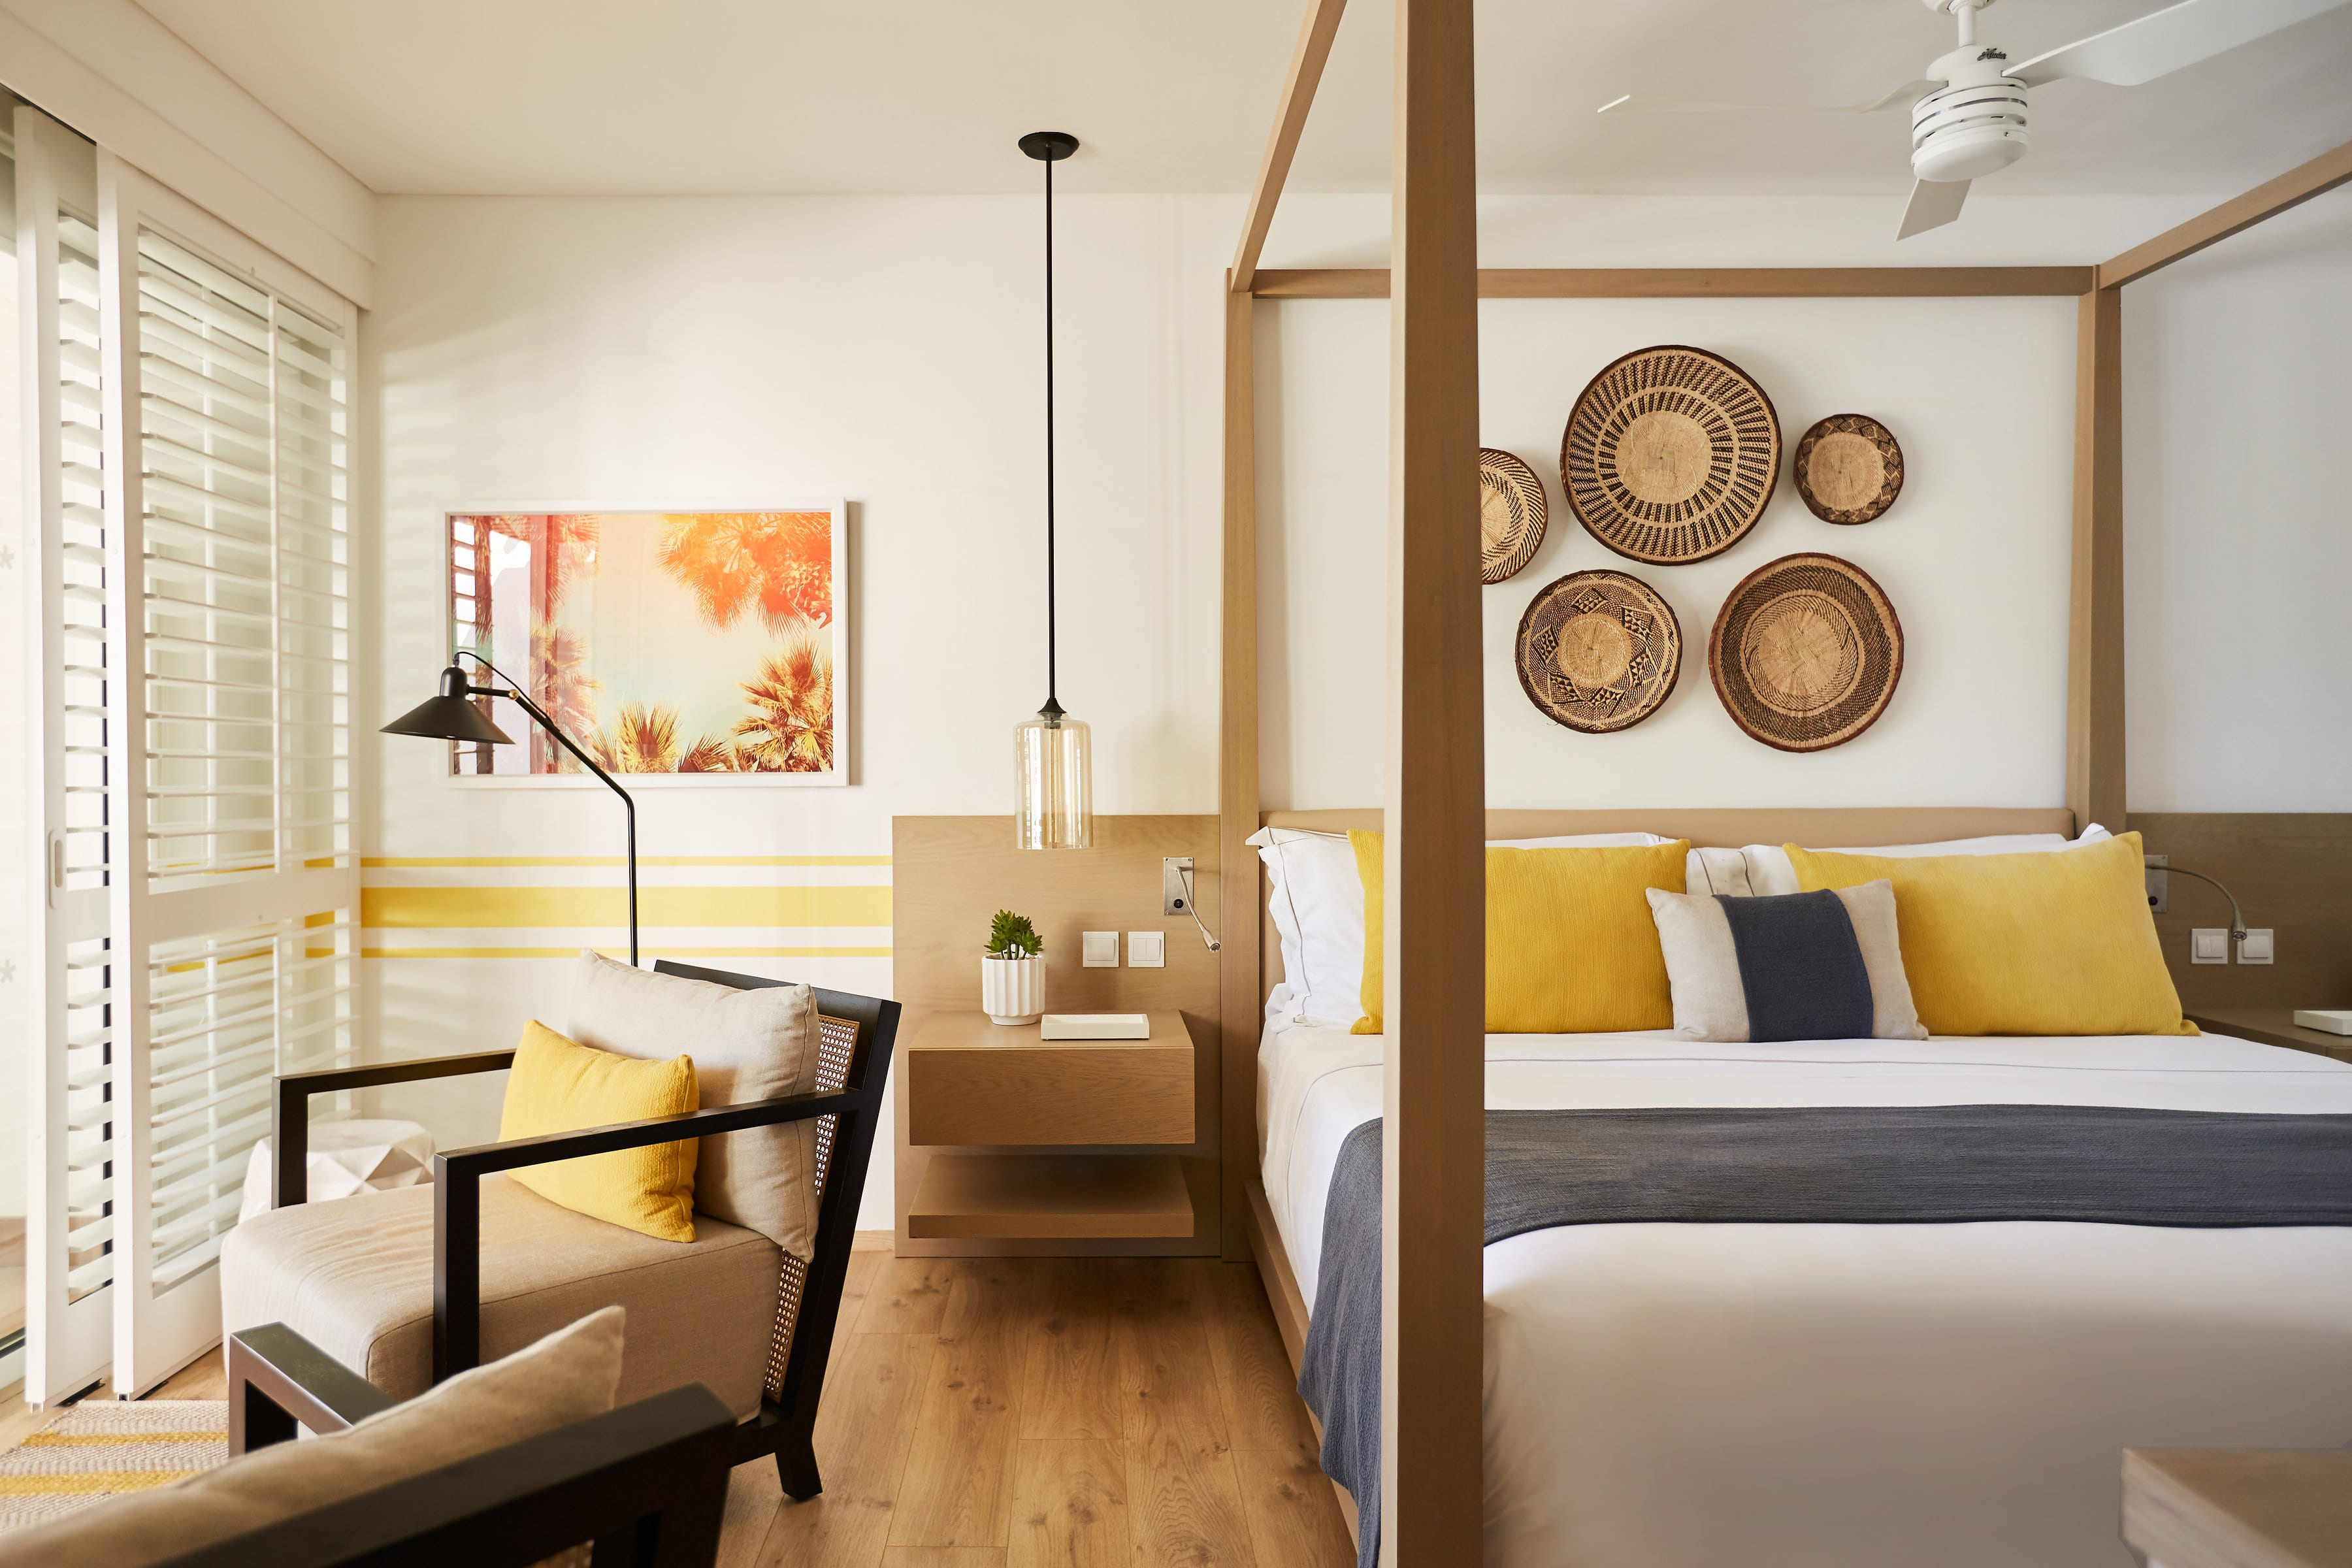 LUX* Grand Gaube, Mauritius (2019) - 5-Star Hotel For Families